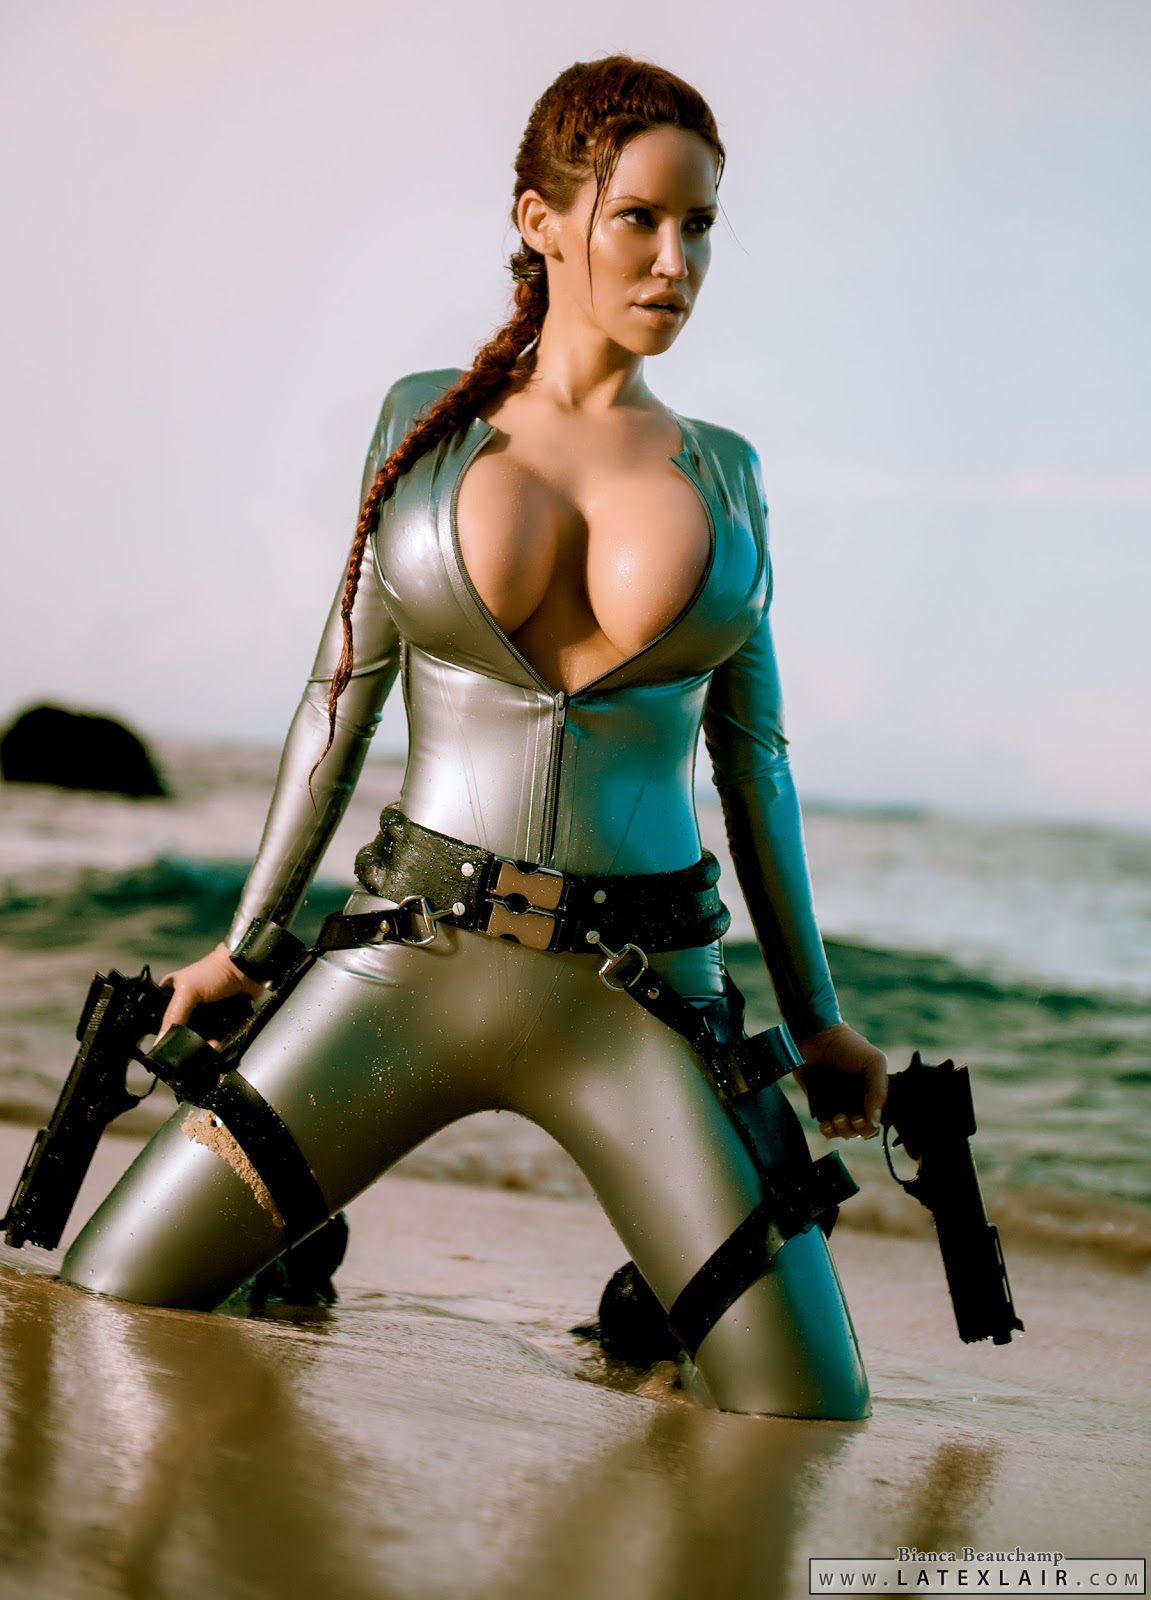 Hetai porn lara croft exposed pictures